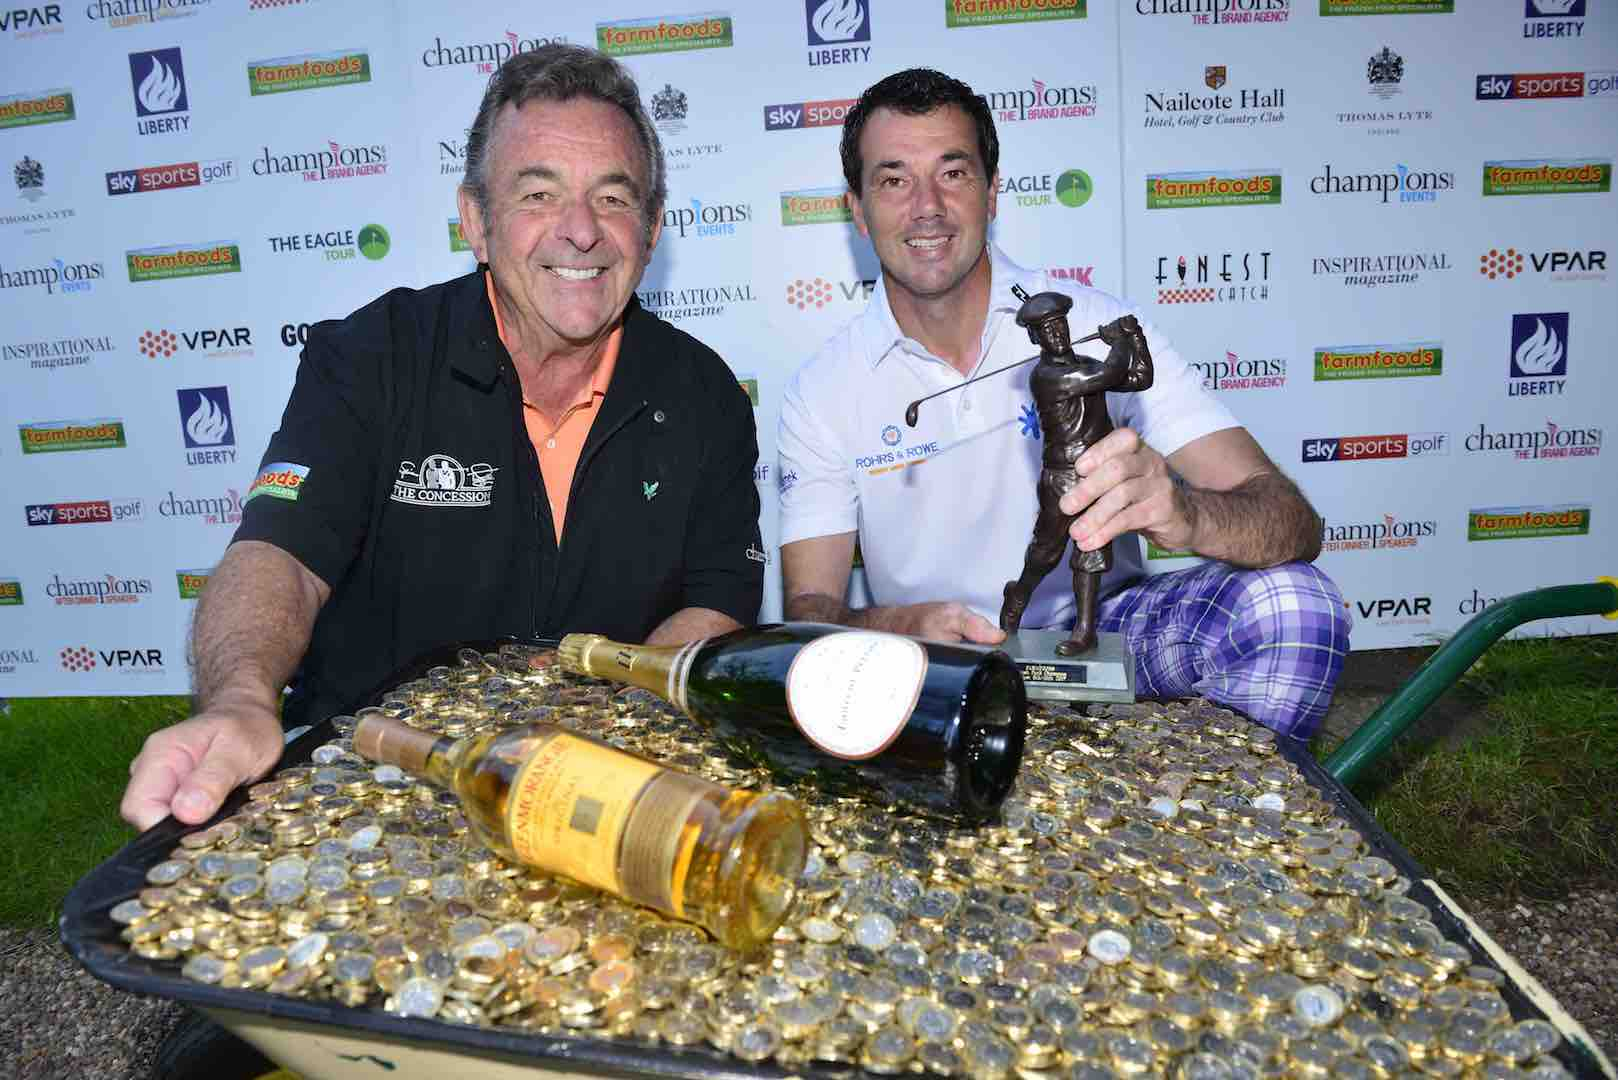 Farmfoods British Par 3 Championship winner